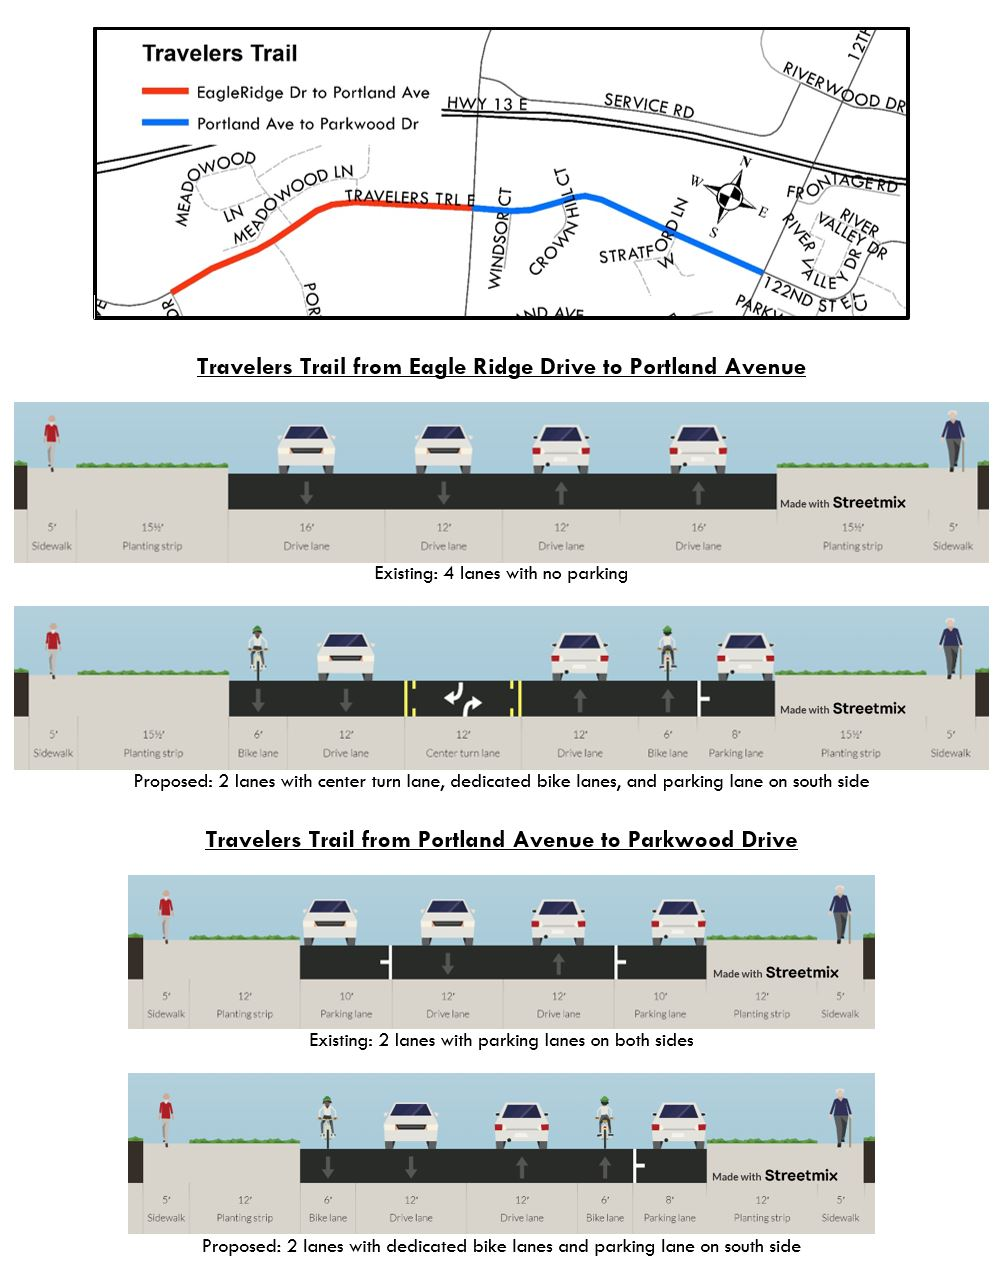 """<span style=""""font-size: 14pt;""""><strong>The proposed addition of bike lanes would reconfigure the lanes on Travelers Trail from Eagle Ridge Drive to Portland Avenue and from Portland Avenue to Parkwood Drive as shown below:</strong></span>"""